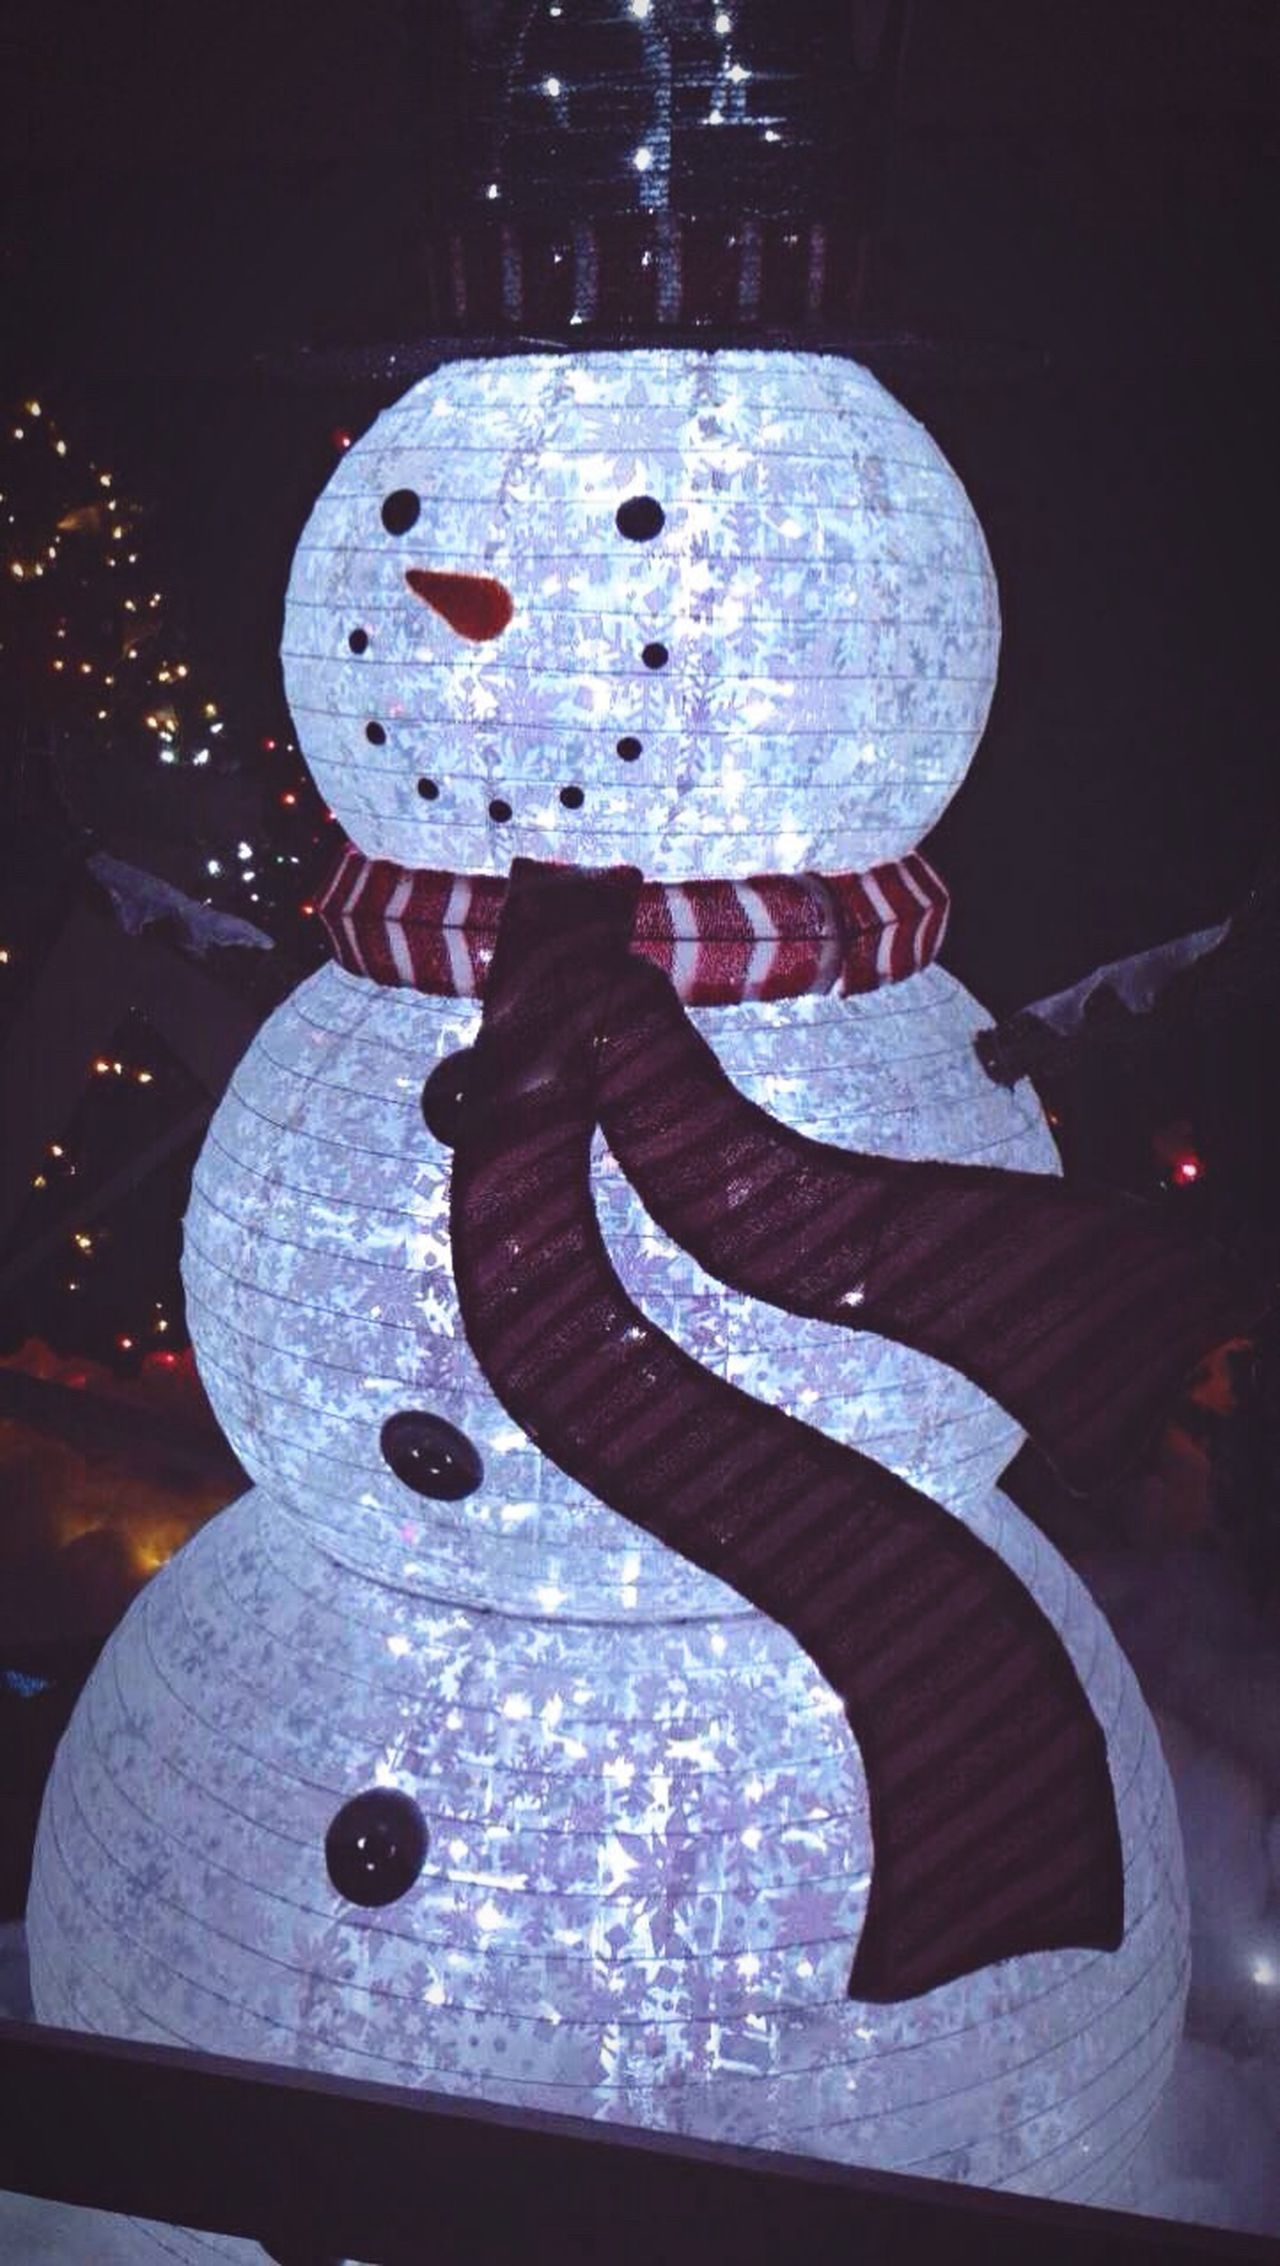 Christmas Decoration Close-up Illuminated No People Bright Light Snowman Children's Wonderland Design Pattern Scarf